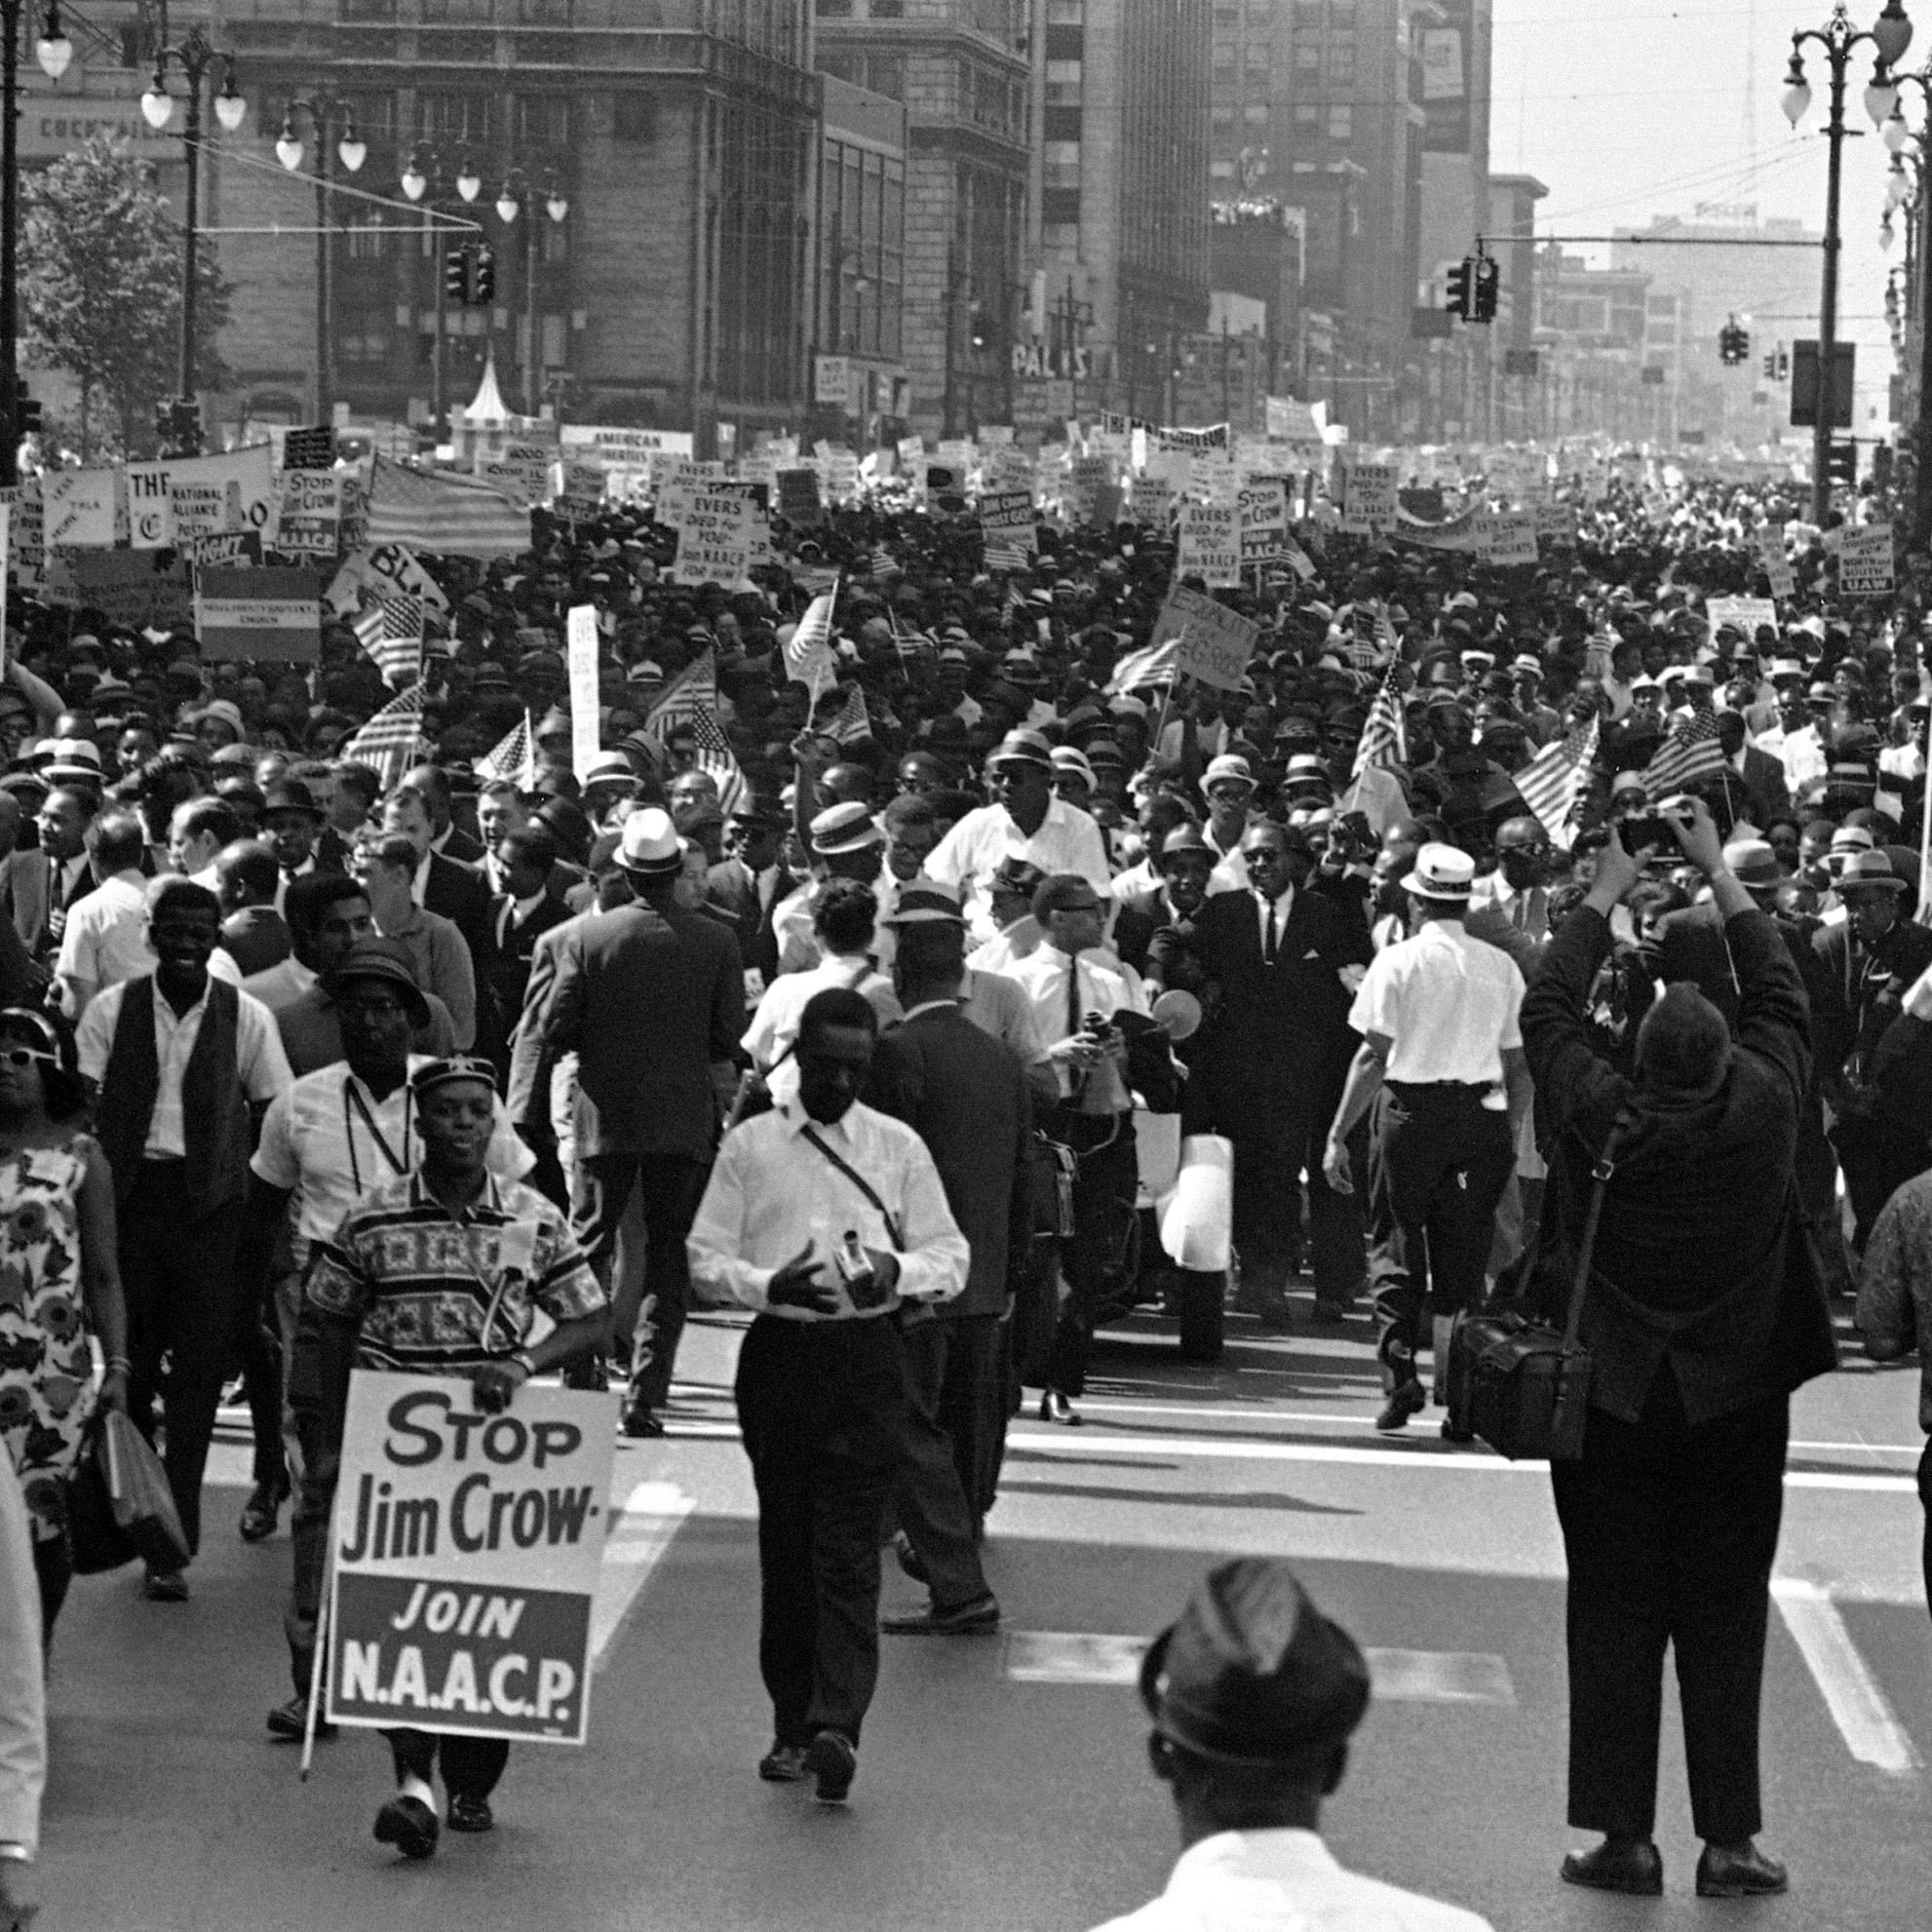 Martin Luther King, Jr., leads thousands of protesters along the streets of Detroit on June 23, 1963.